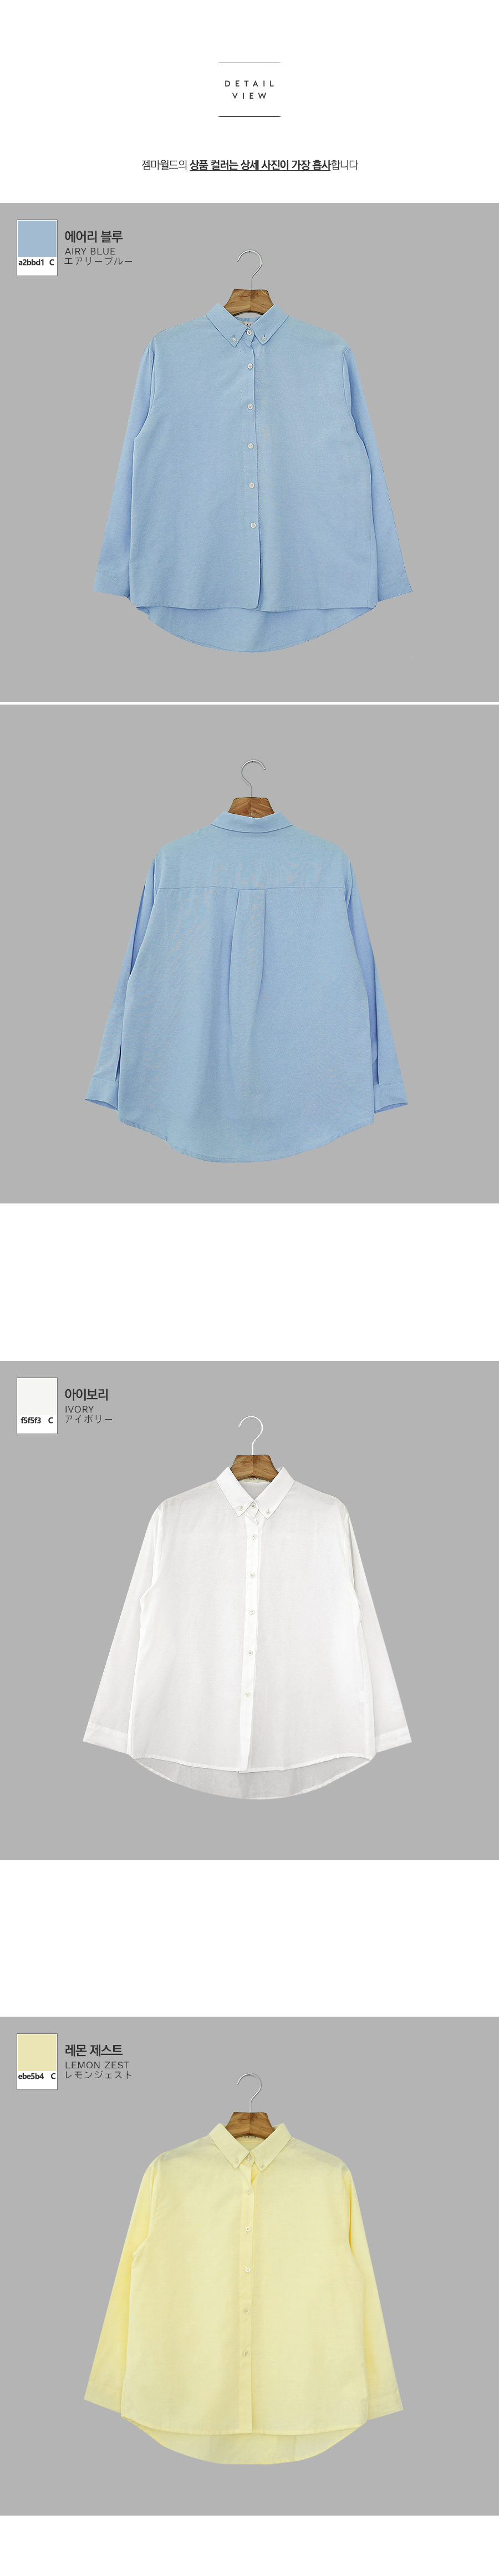 Self-produced / PBP. Oxford Classic Fit Shirt